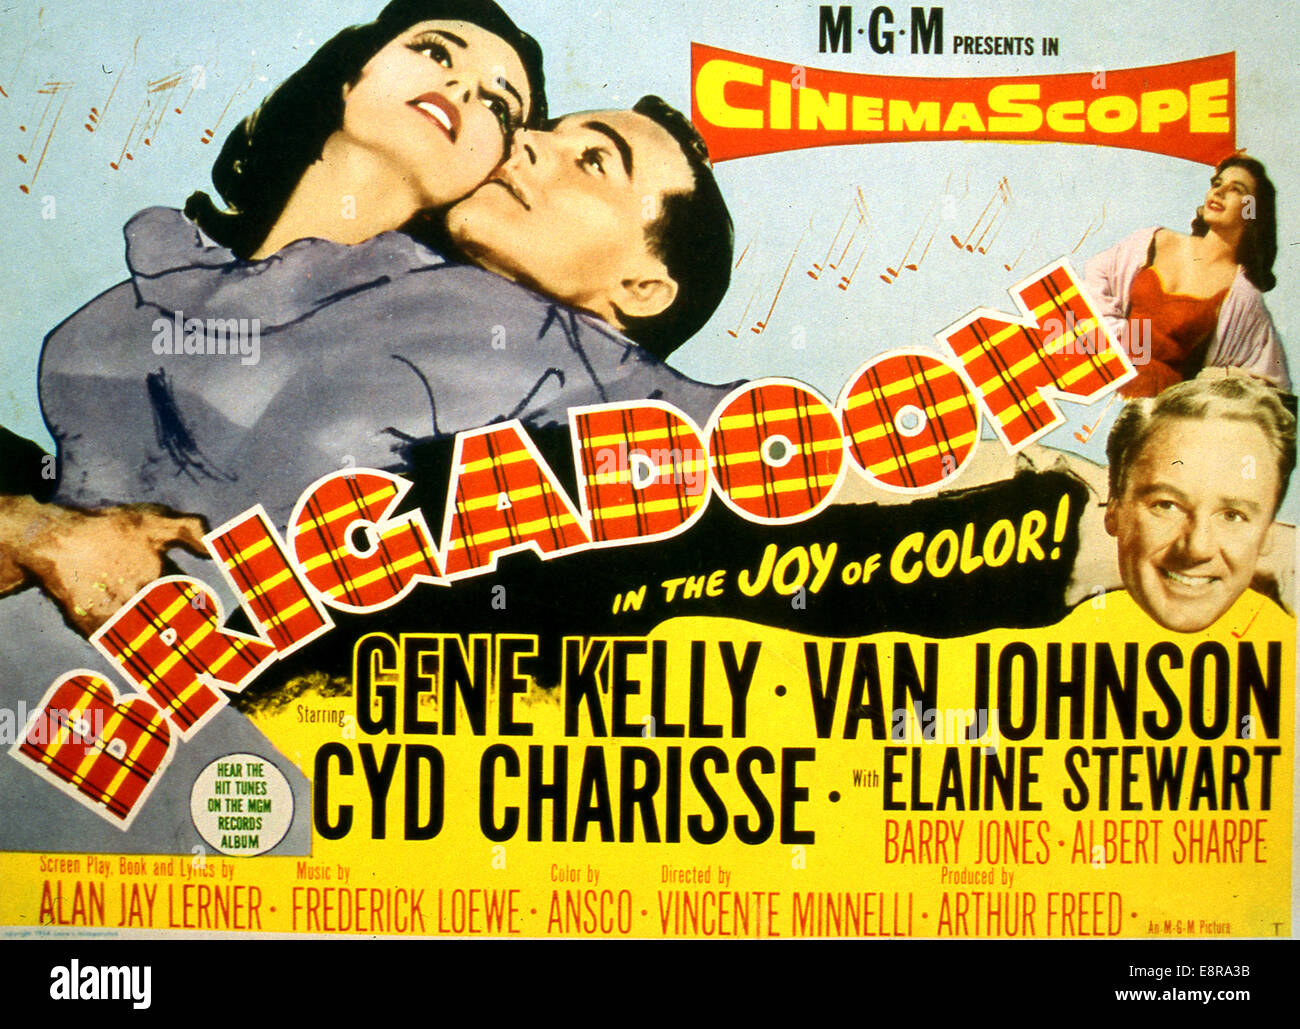 https://i1.wp.com/c8.alamy.com/comp/E8RA3B/brigadoon-poster-for-1954-mgm-film-musical-with-cyd-charisse-and-gene-E8RA3B.jpg